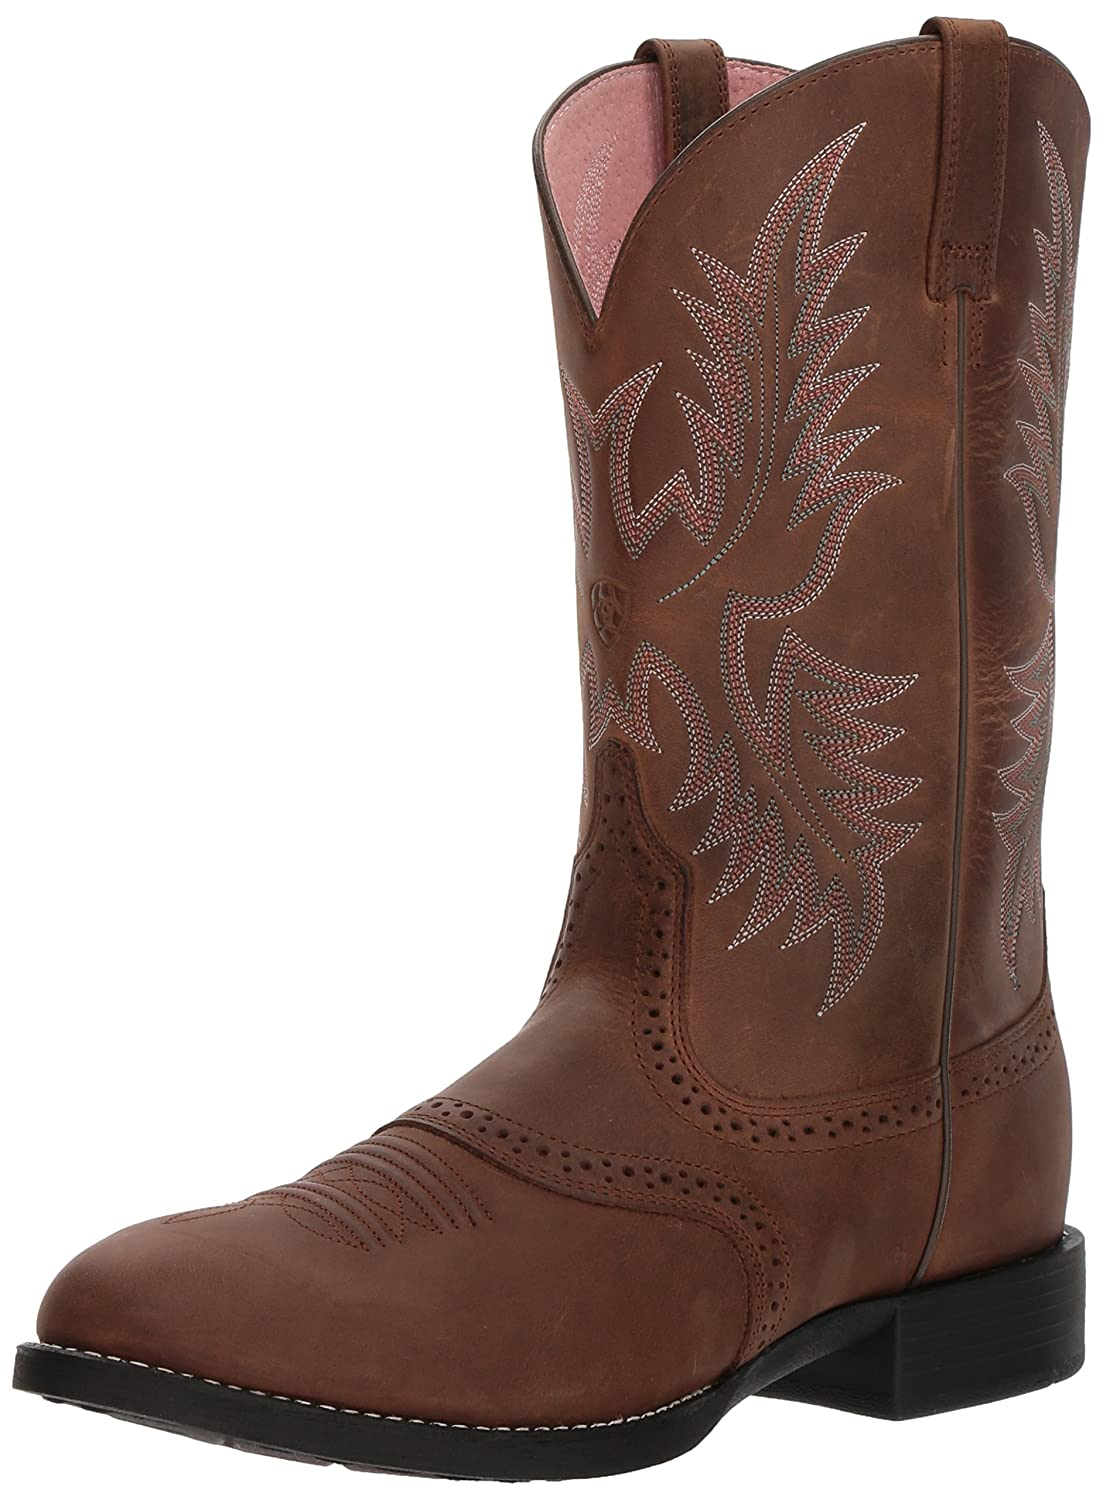 Ariat Men's Heritage Stockman Western Boot B000JG1W0C 9 B(M) US|Driftwood Brown/Driftwood Brown